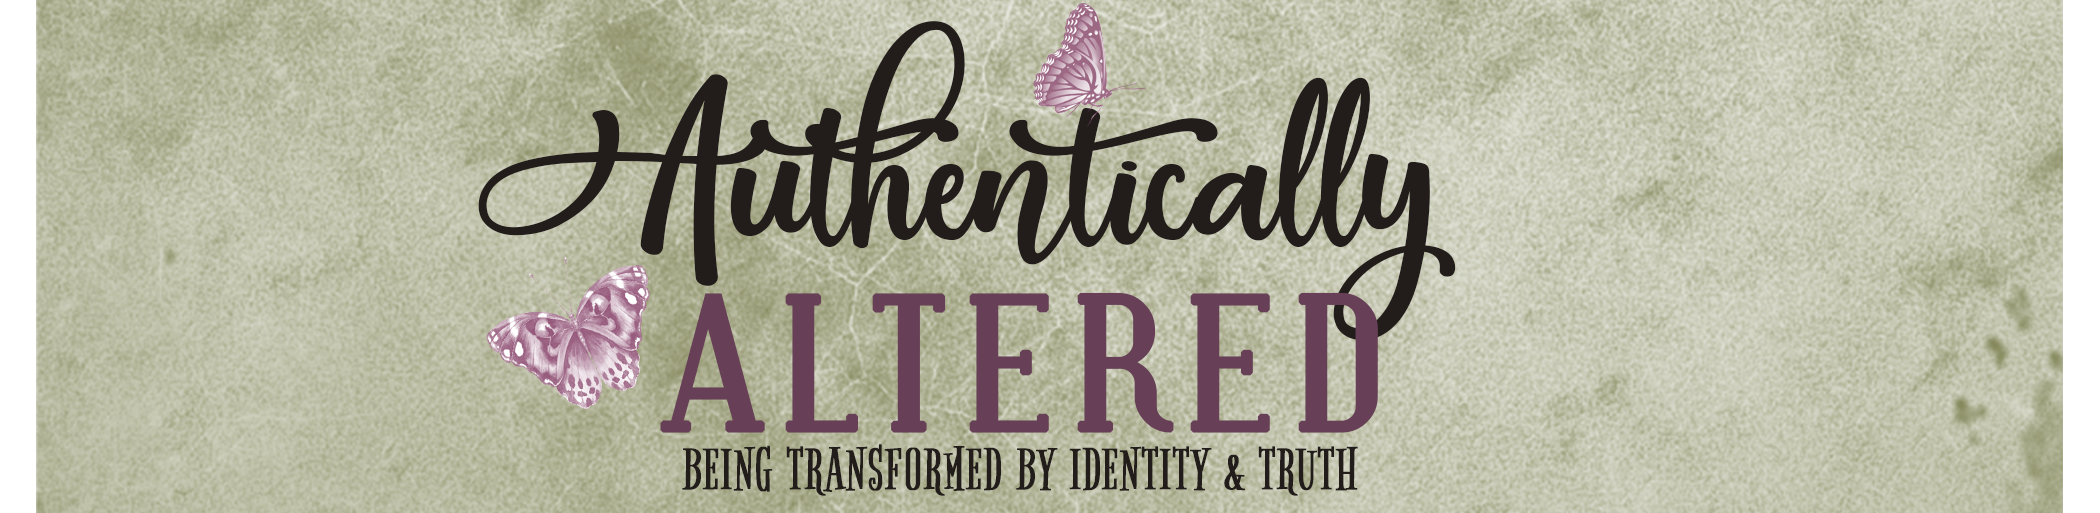 Authentically Altered